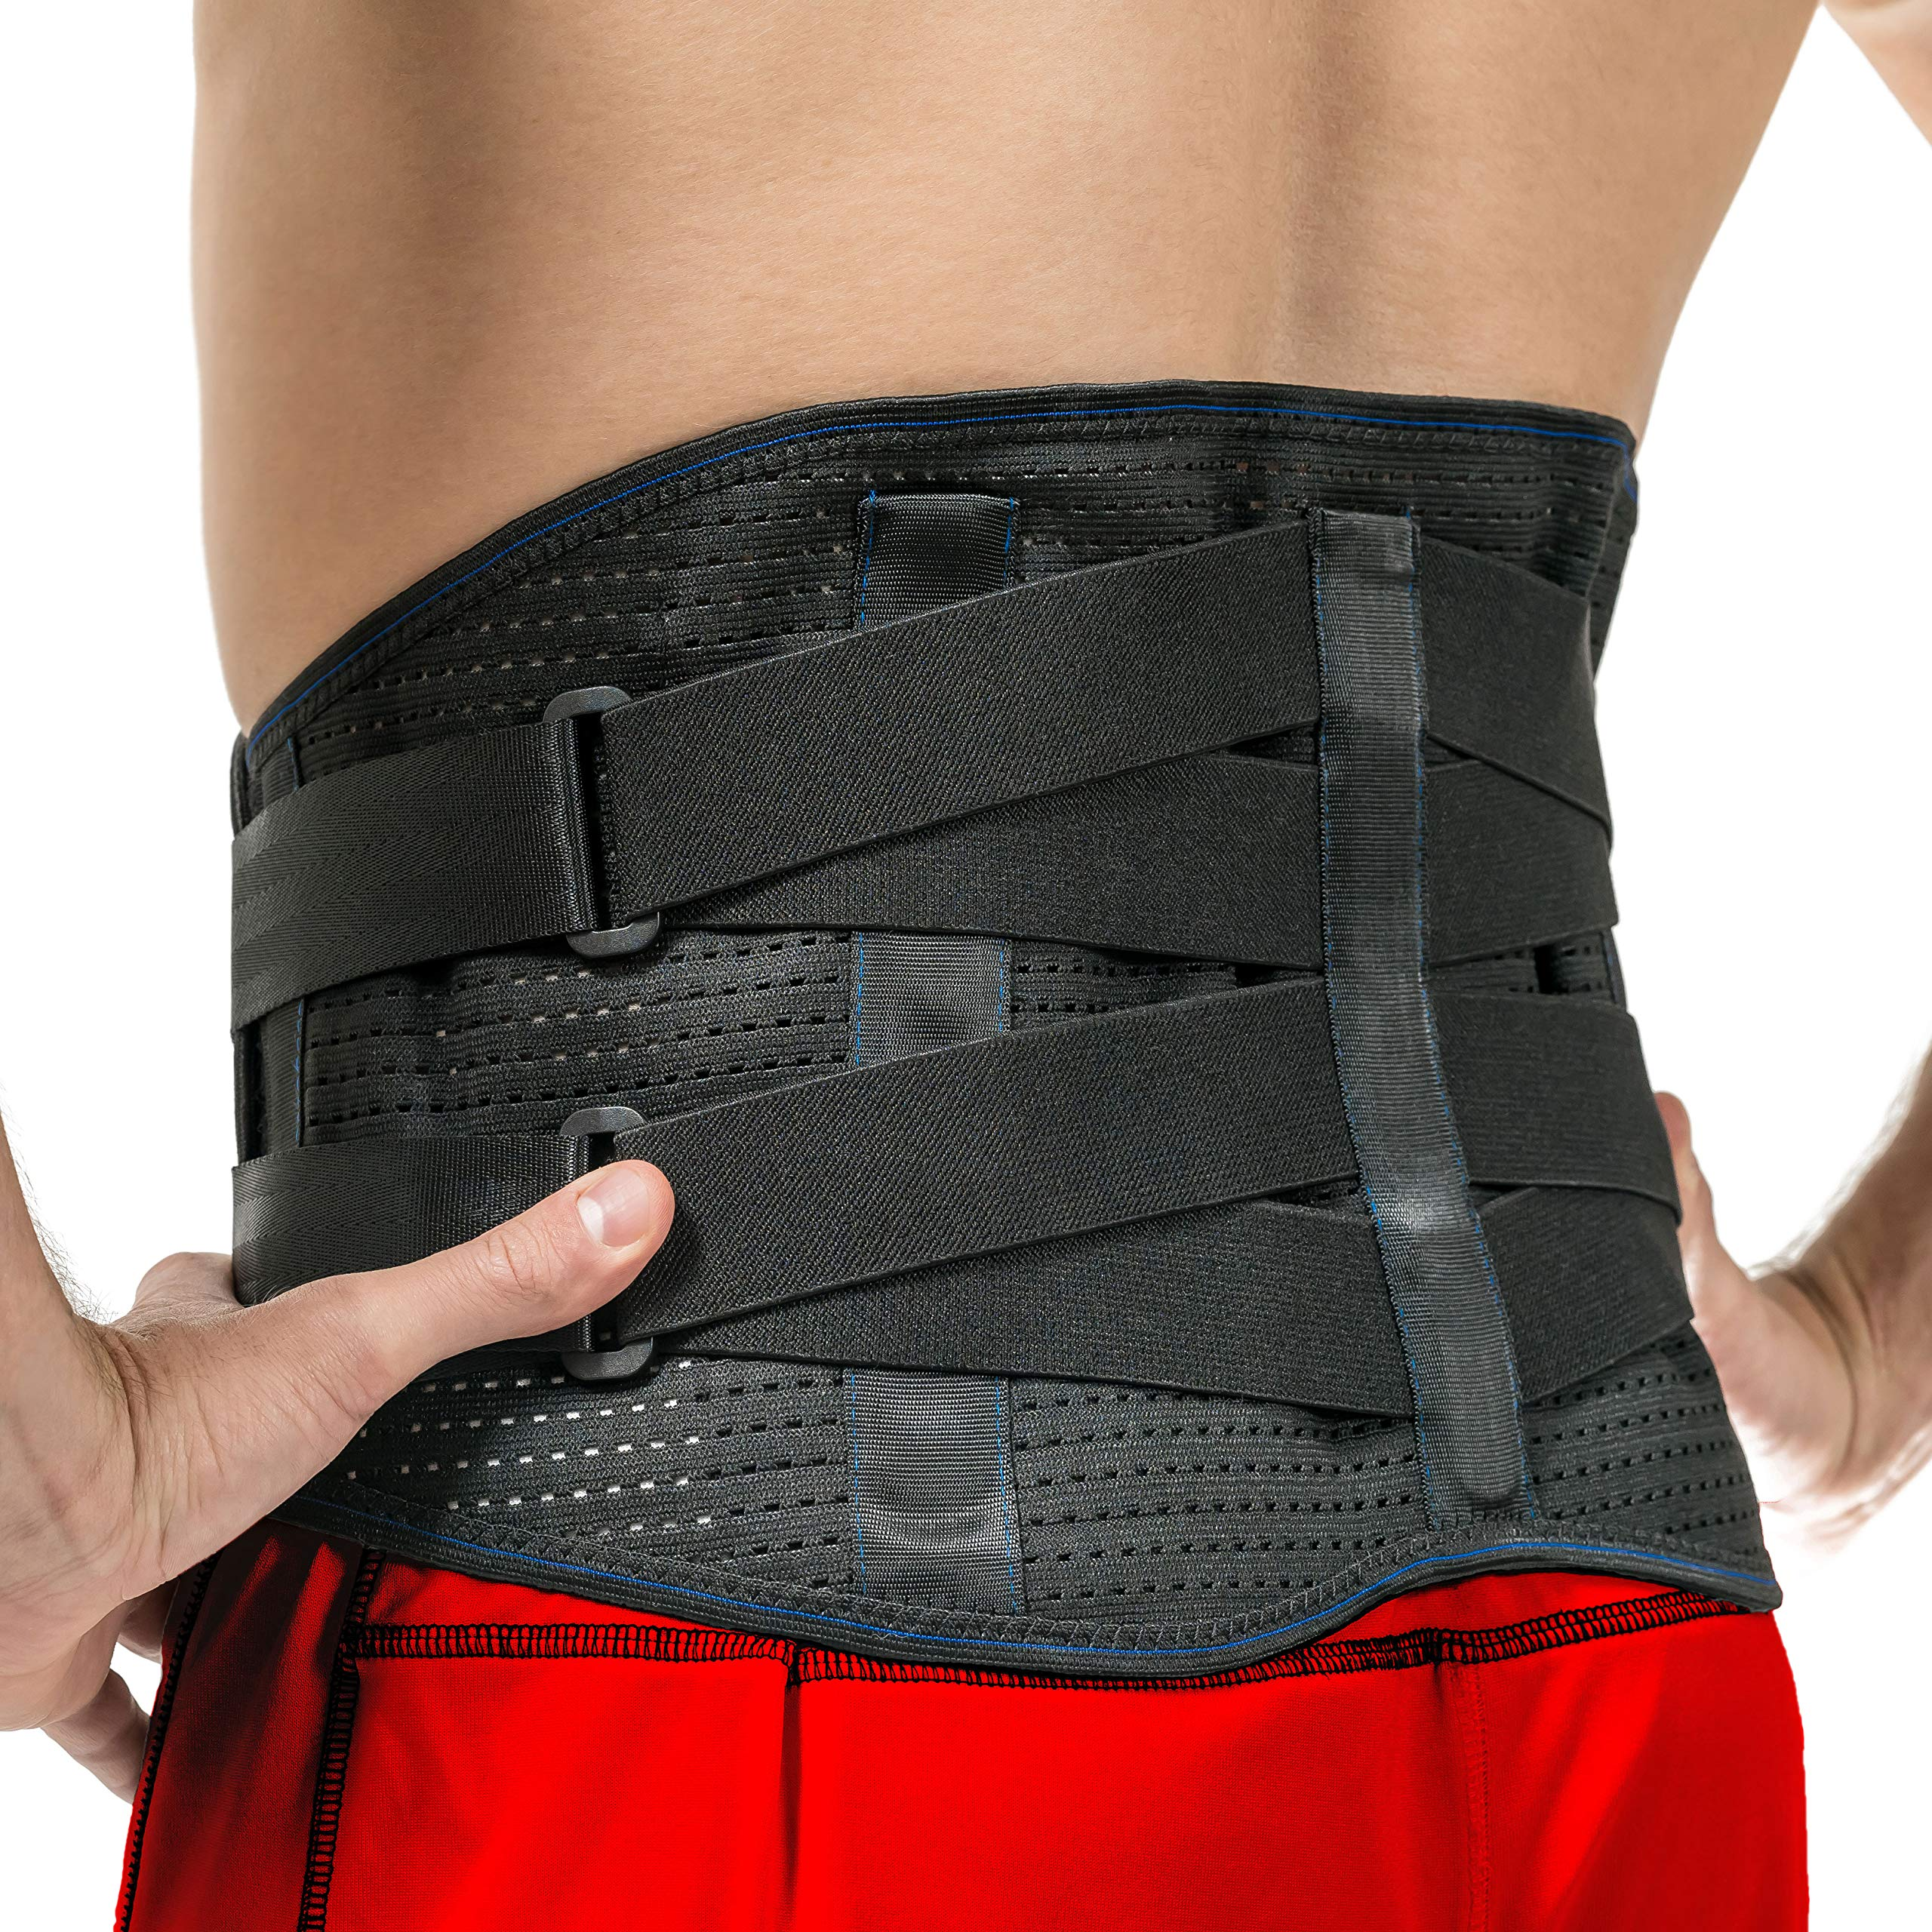 Lower Back Brace by FlexGuard Support - Lumbar Support Waist Backbrace for Back Pain Relief - Compression Belt for Men and Women - Back Braces for Sciatica, Scoliosis and Herniated Disc (Med/Large) by Flexguard Support